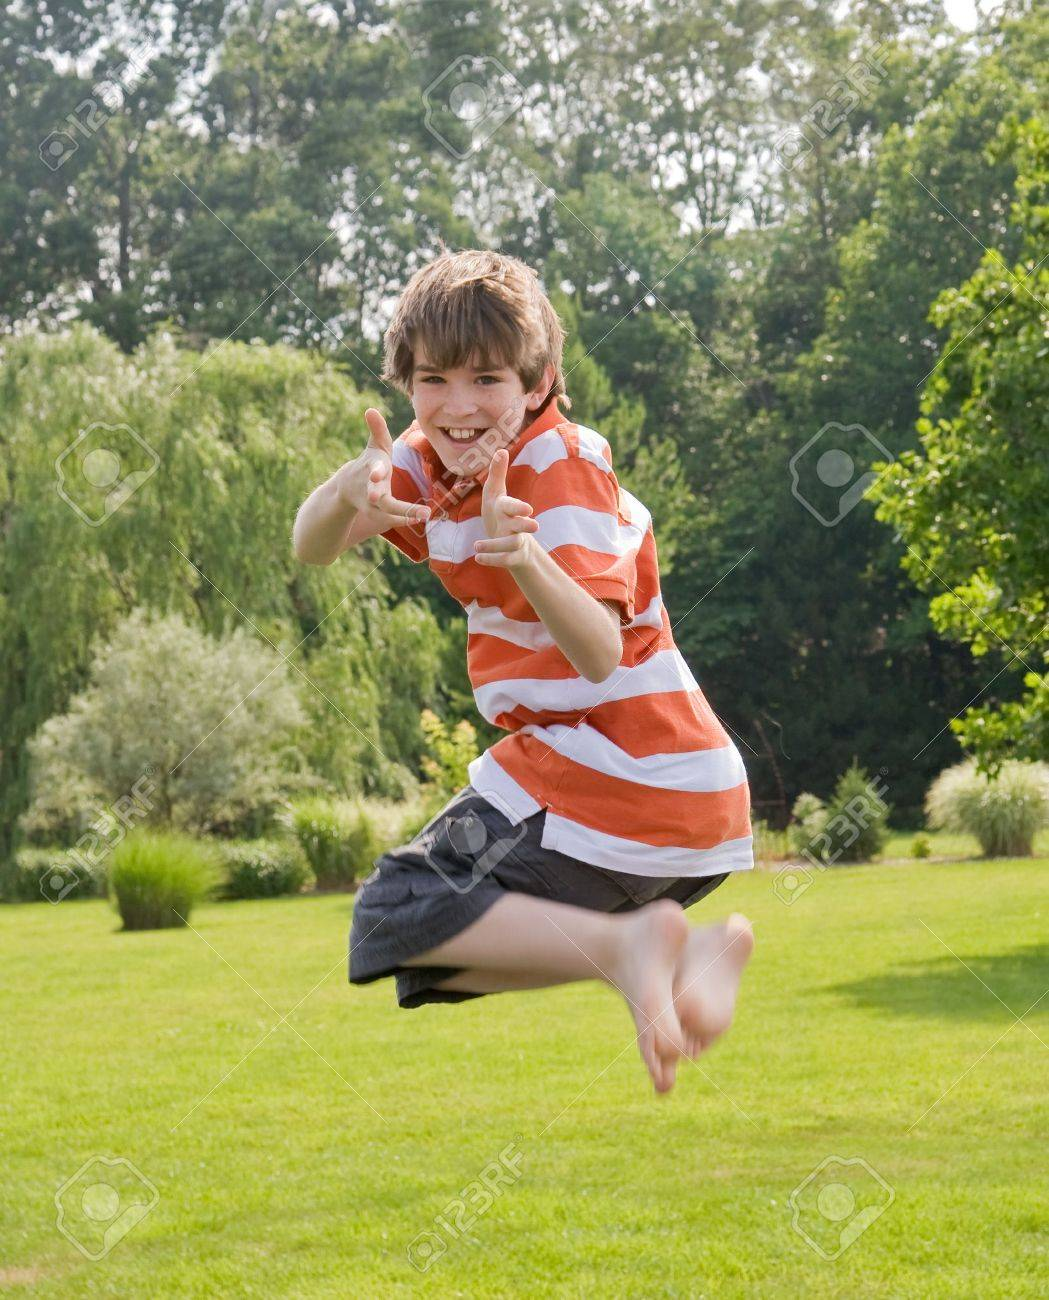 Boy Jumping in the Air - 3239590